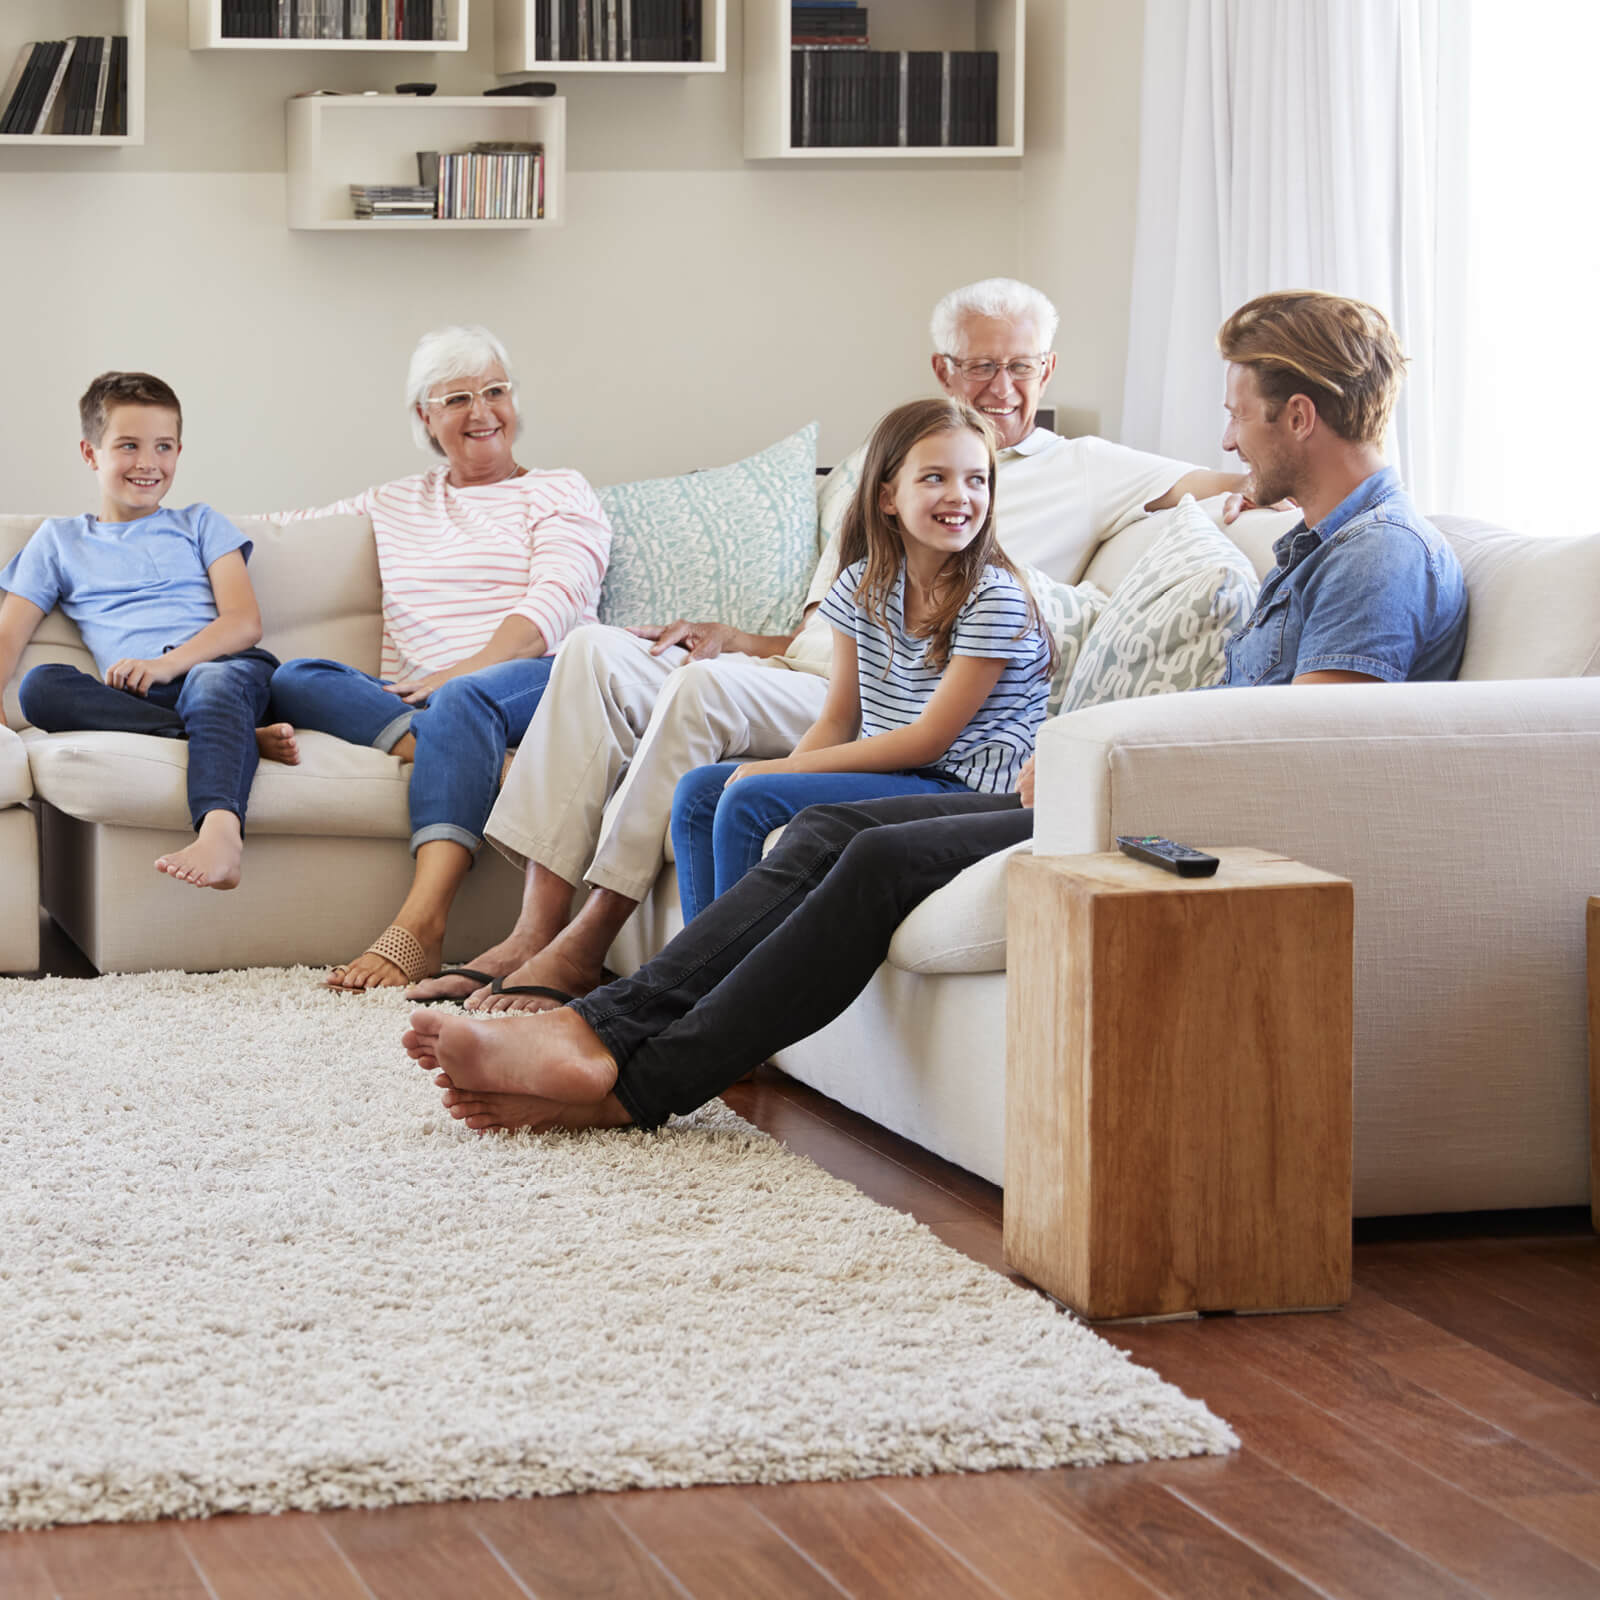 Planning for ultimate staycation | West Michigan Carpet Center